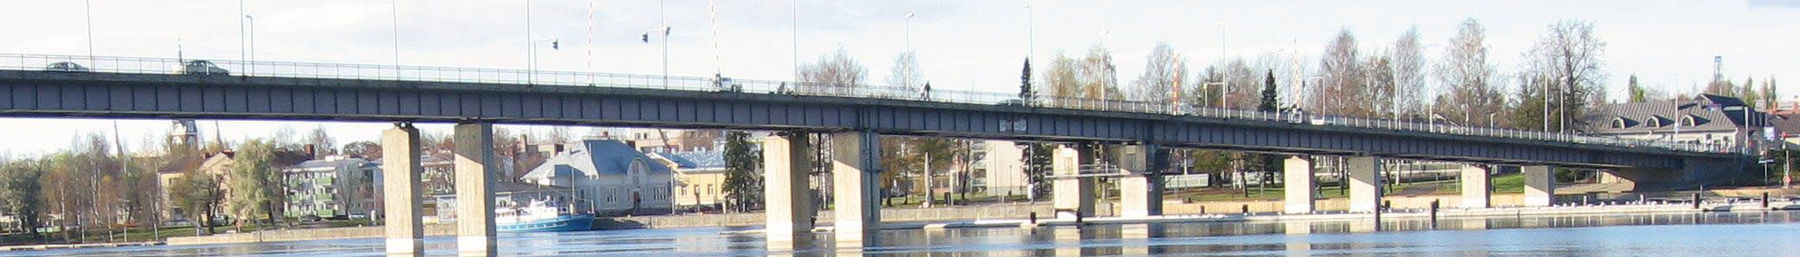 Joensuu banner Bridge.jpg